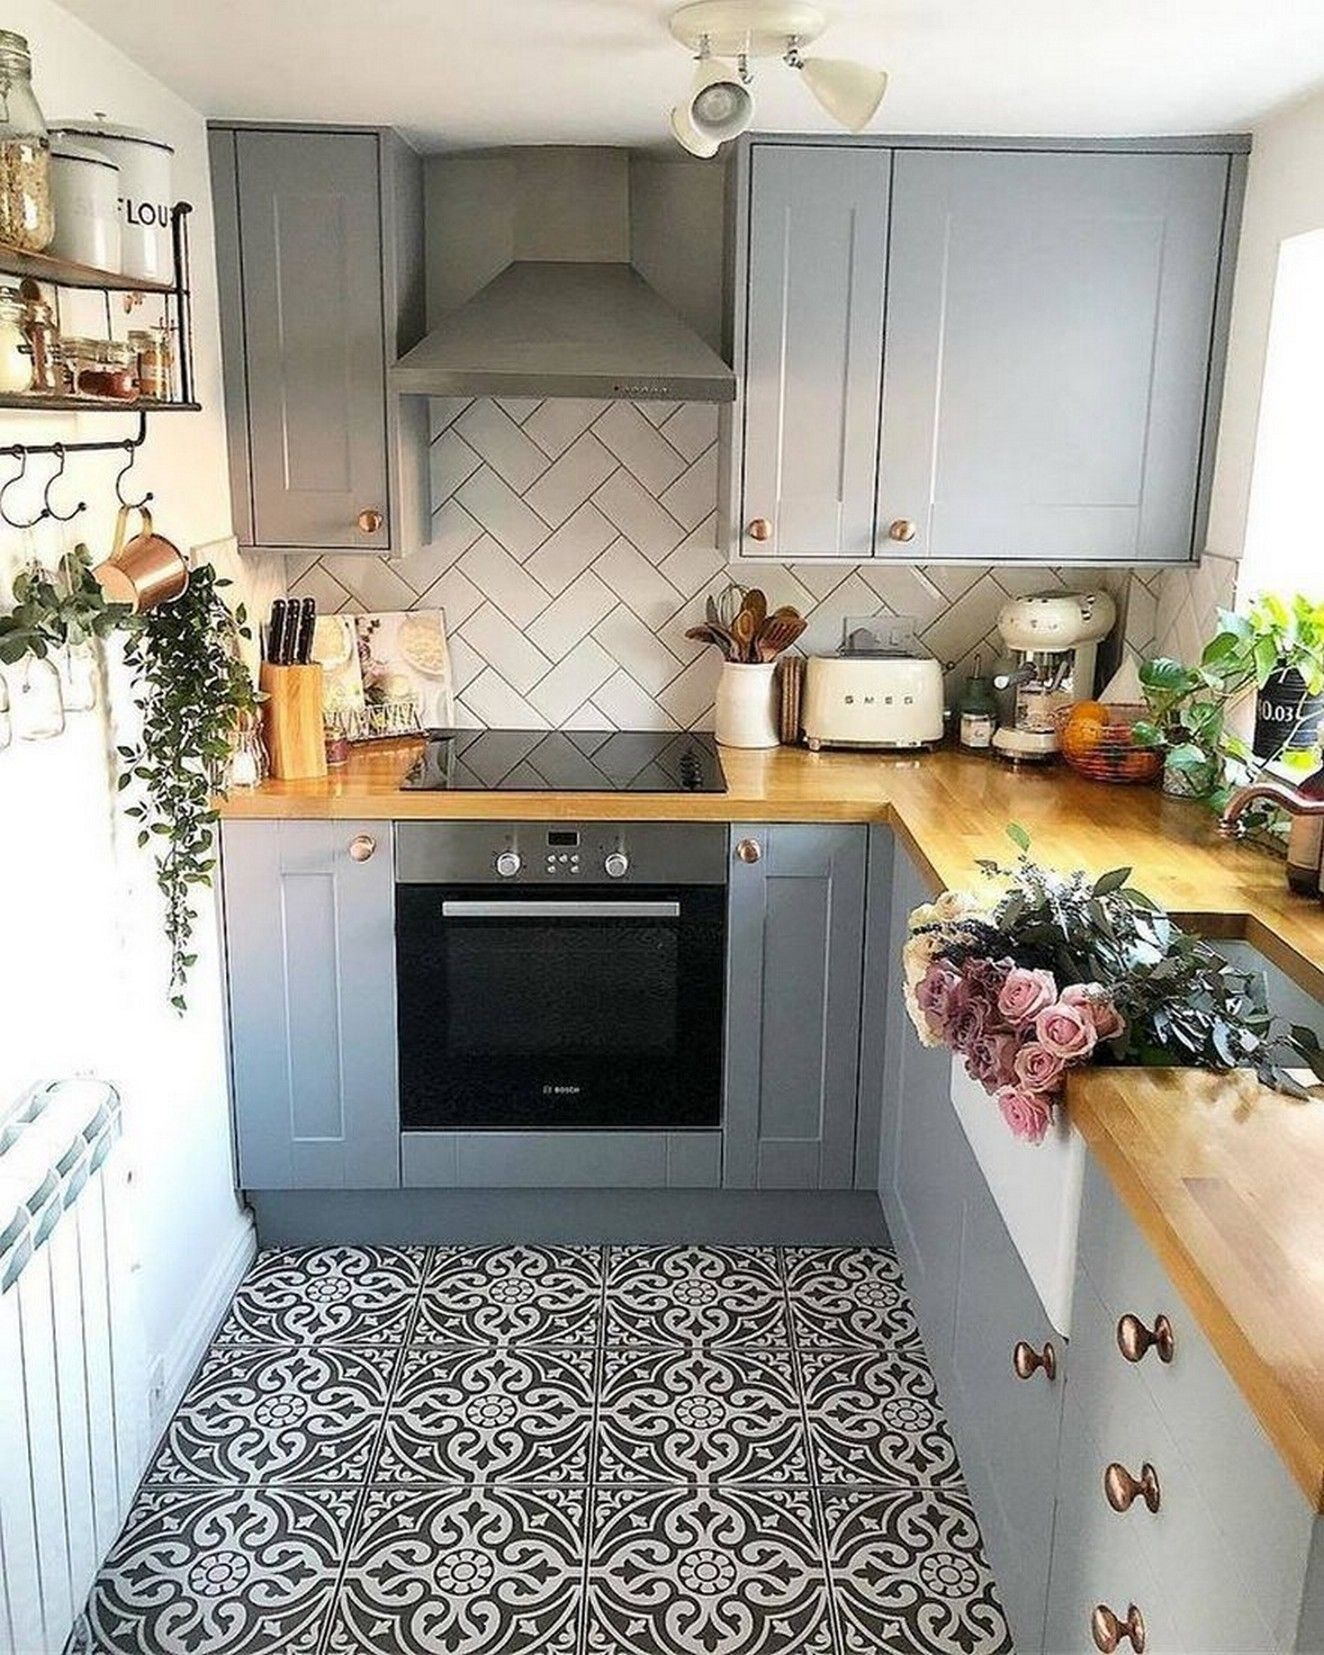 28 Small Kitchen Design Ideas: √60 Kitchen Ideas Design Low Budget To Tiny House You Are